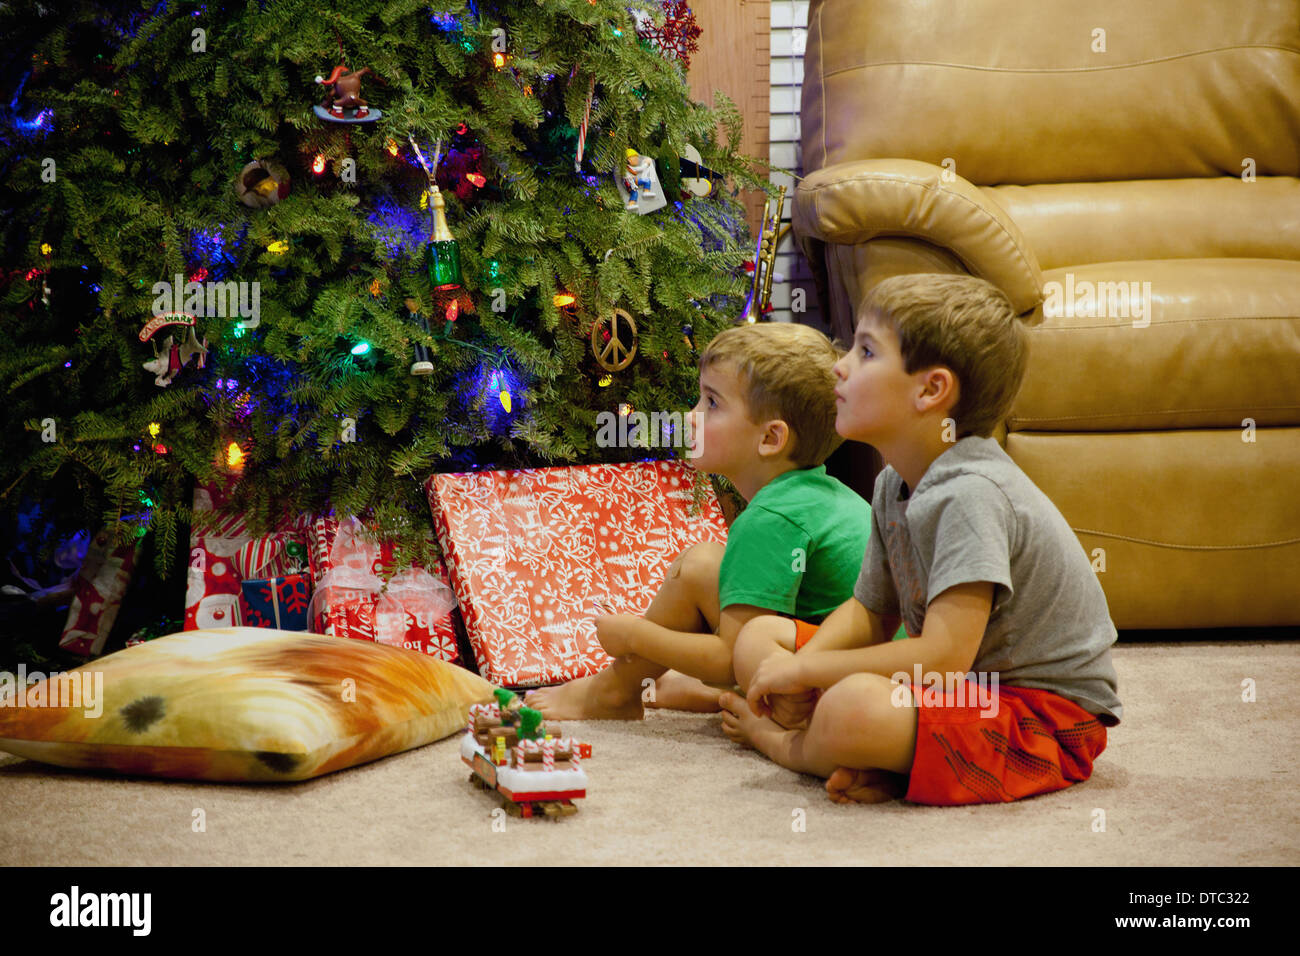 Two engrossed young brothers sitting next to xmas tree - Stock Image